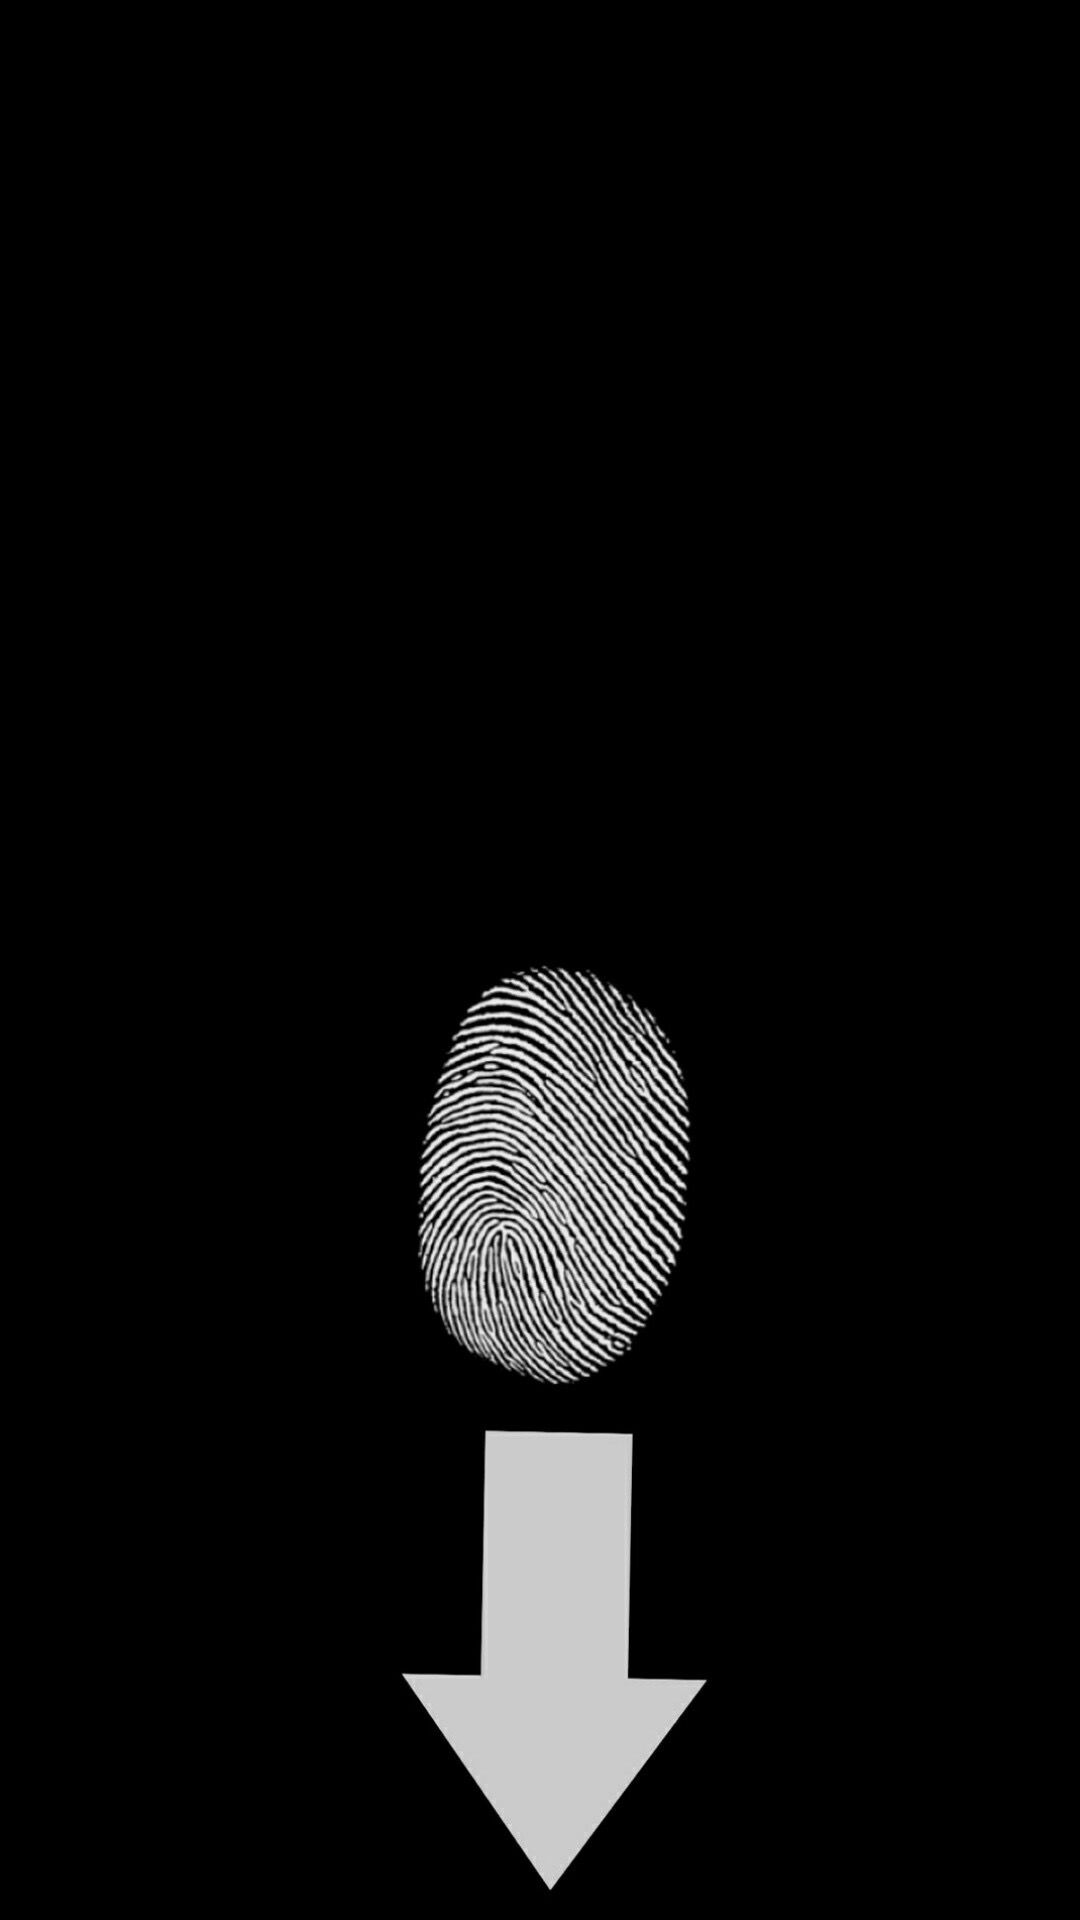 Fingerprint Wallpaper Iphone 7 Wallpaper Ios Latest